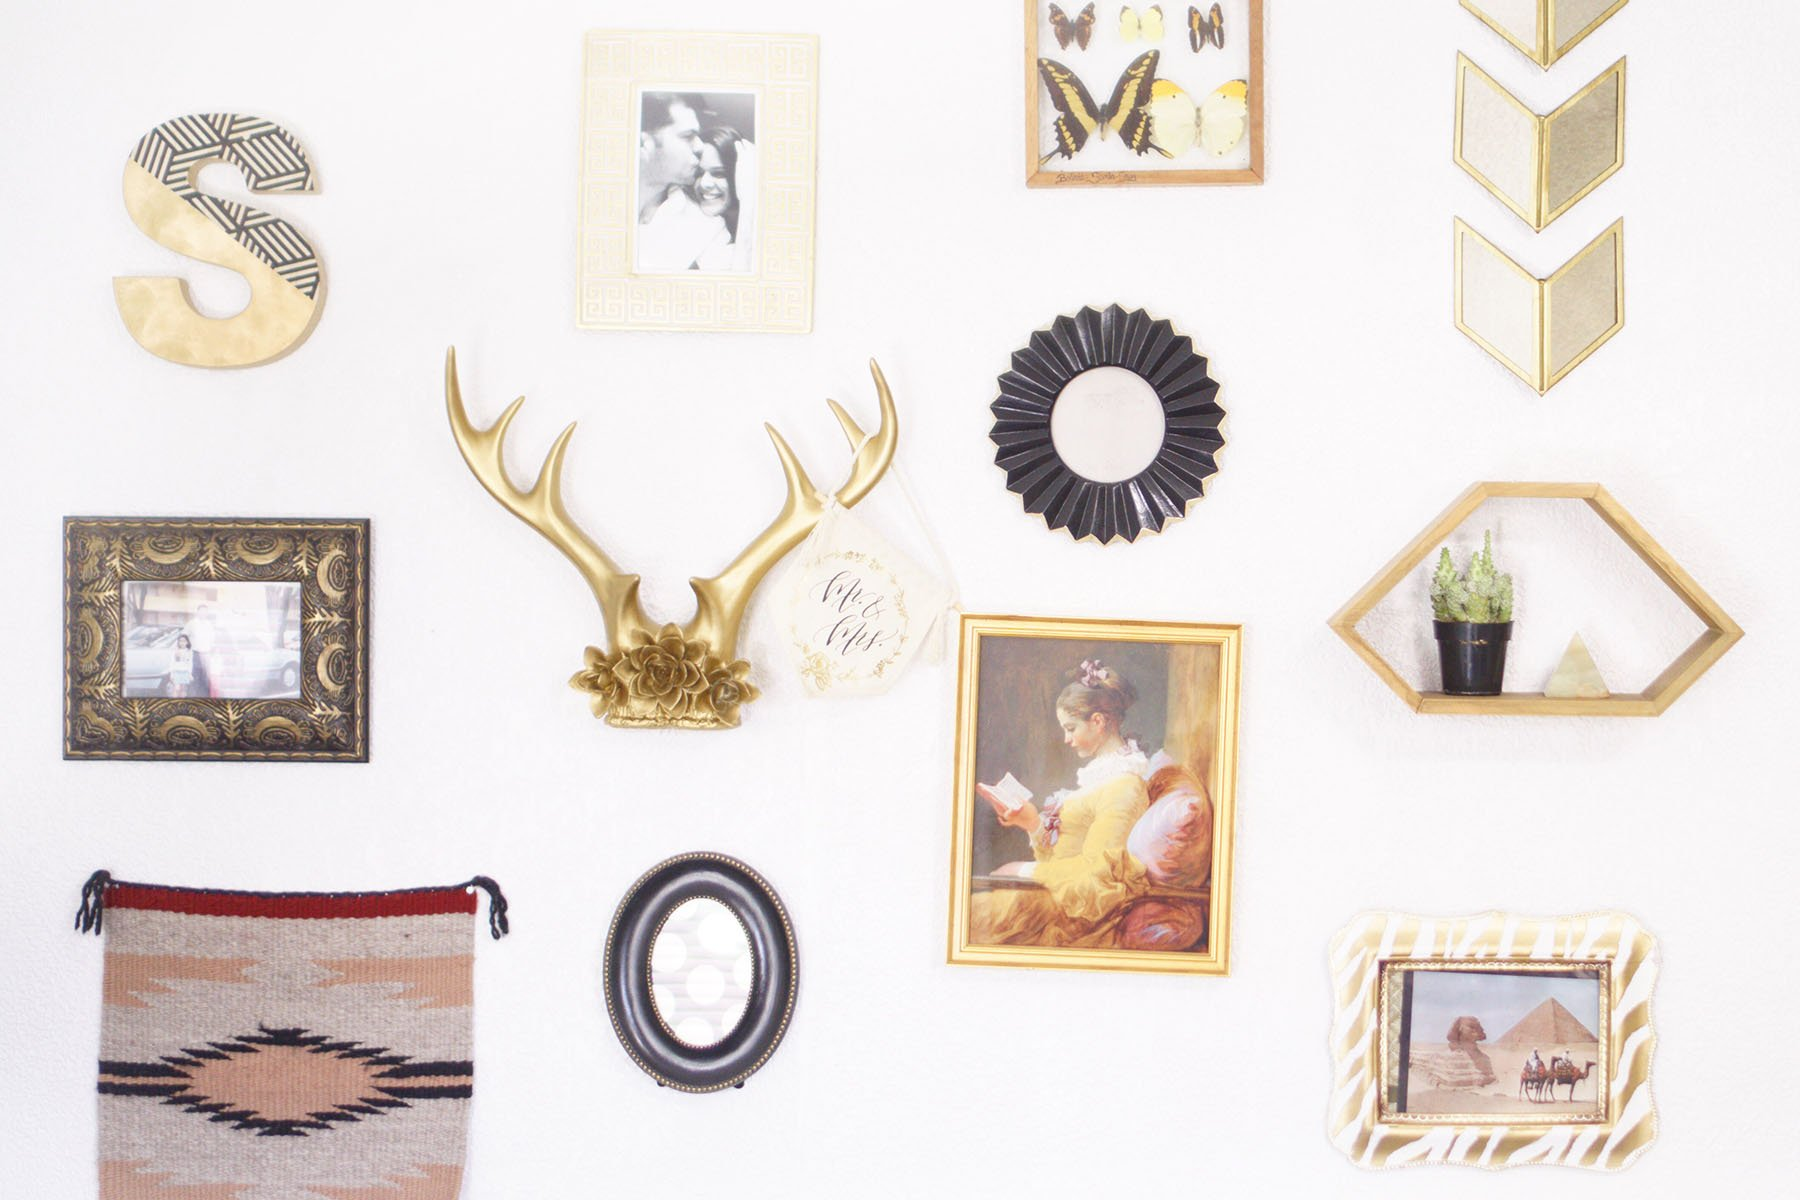 5 Powerful Vision Board Ideas to Help You Get Anything You Want